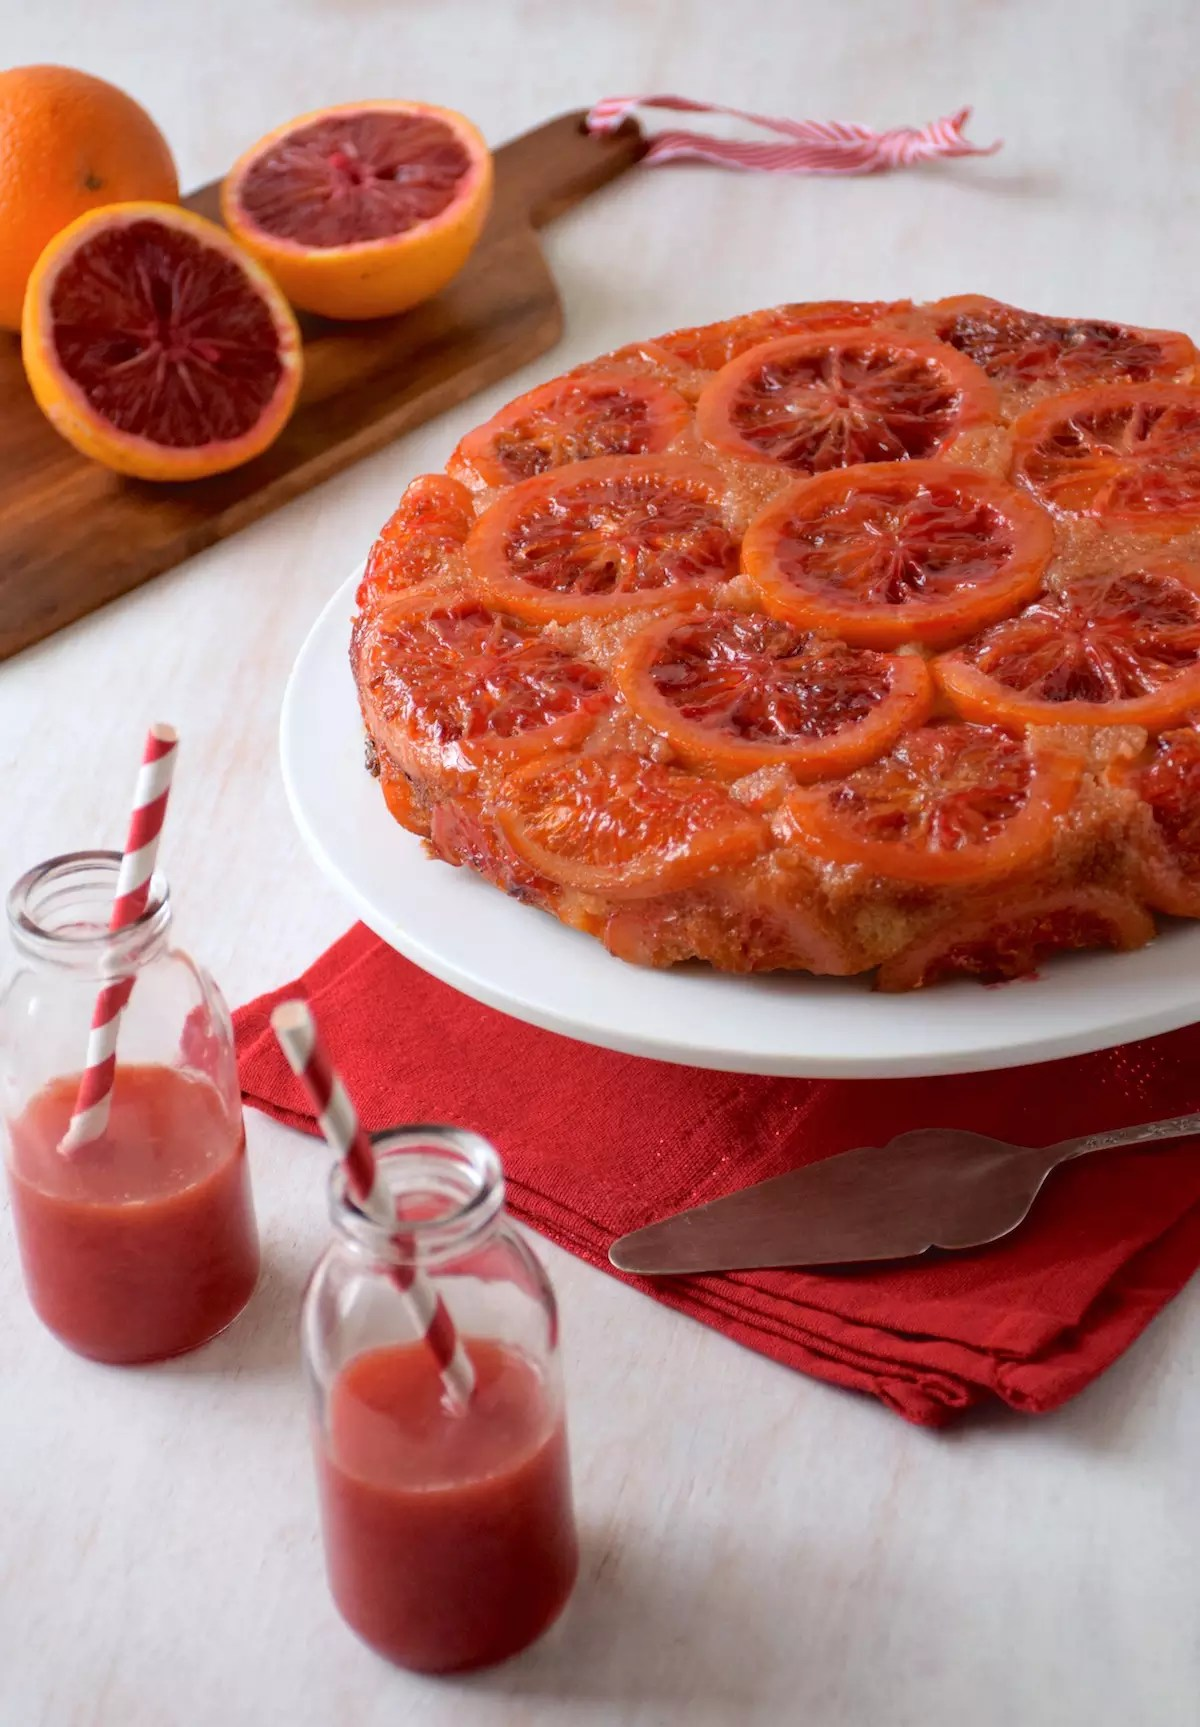 Upside down blood oranges polenta cake